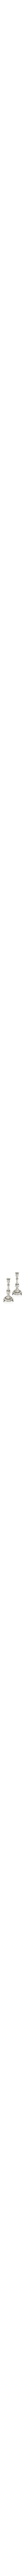 Large Candlesticks With Legs